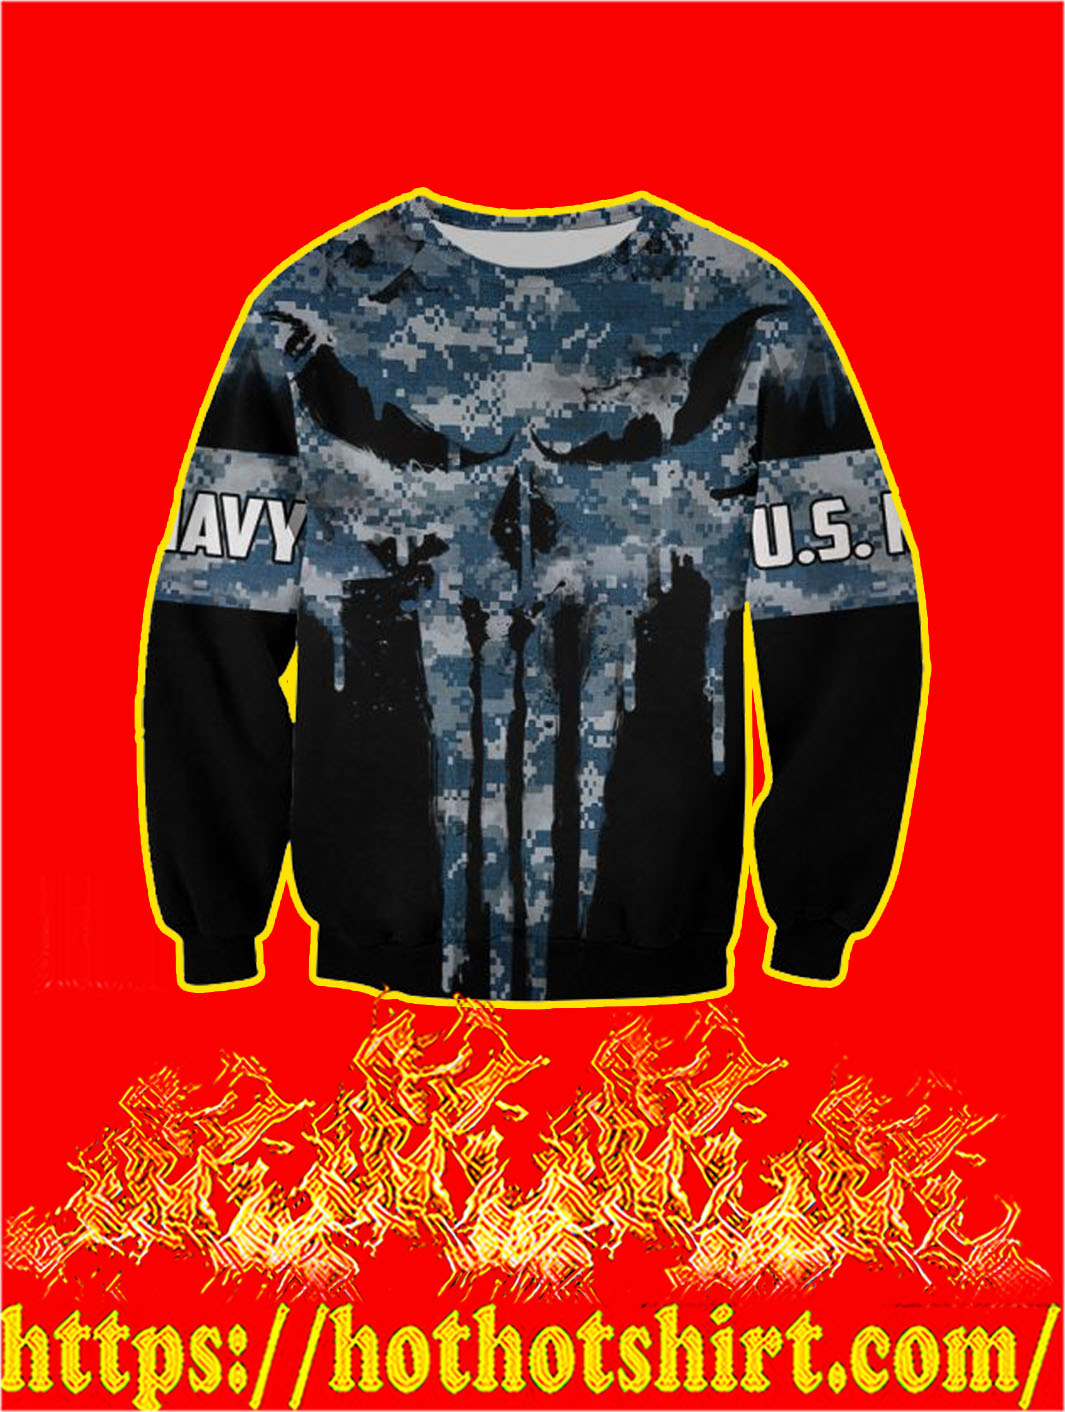 U.S Navy Punisher Skull 3D Printed Sweatshirt